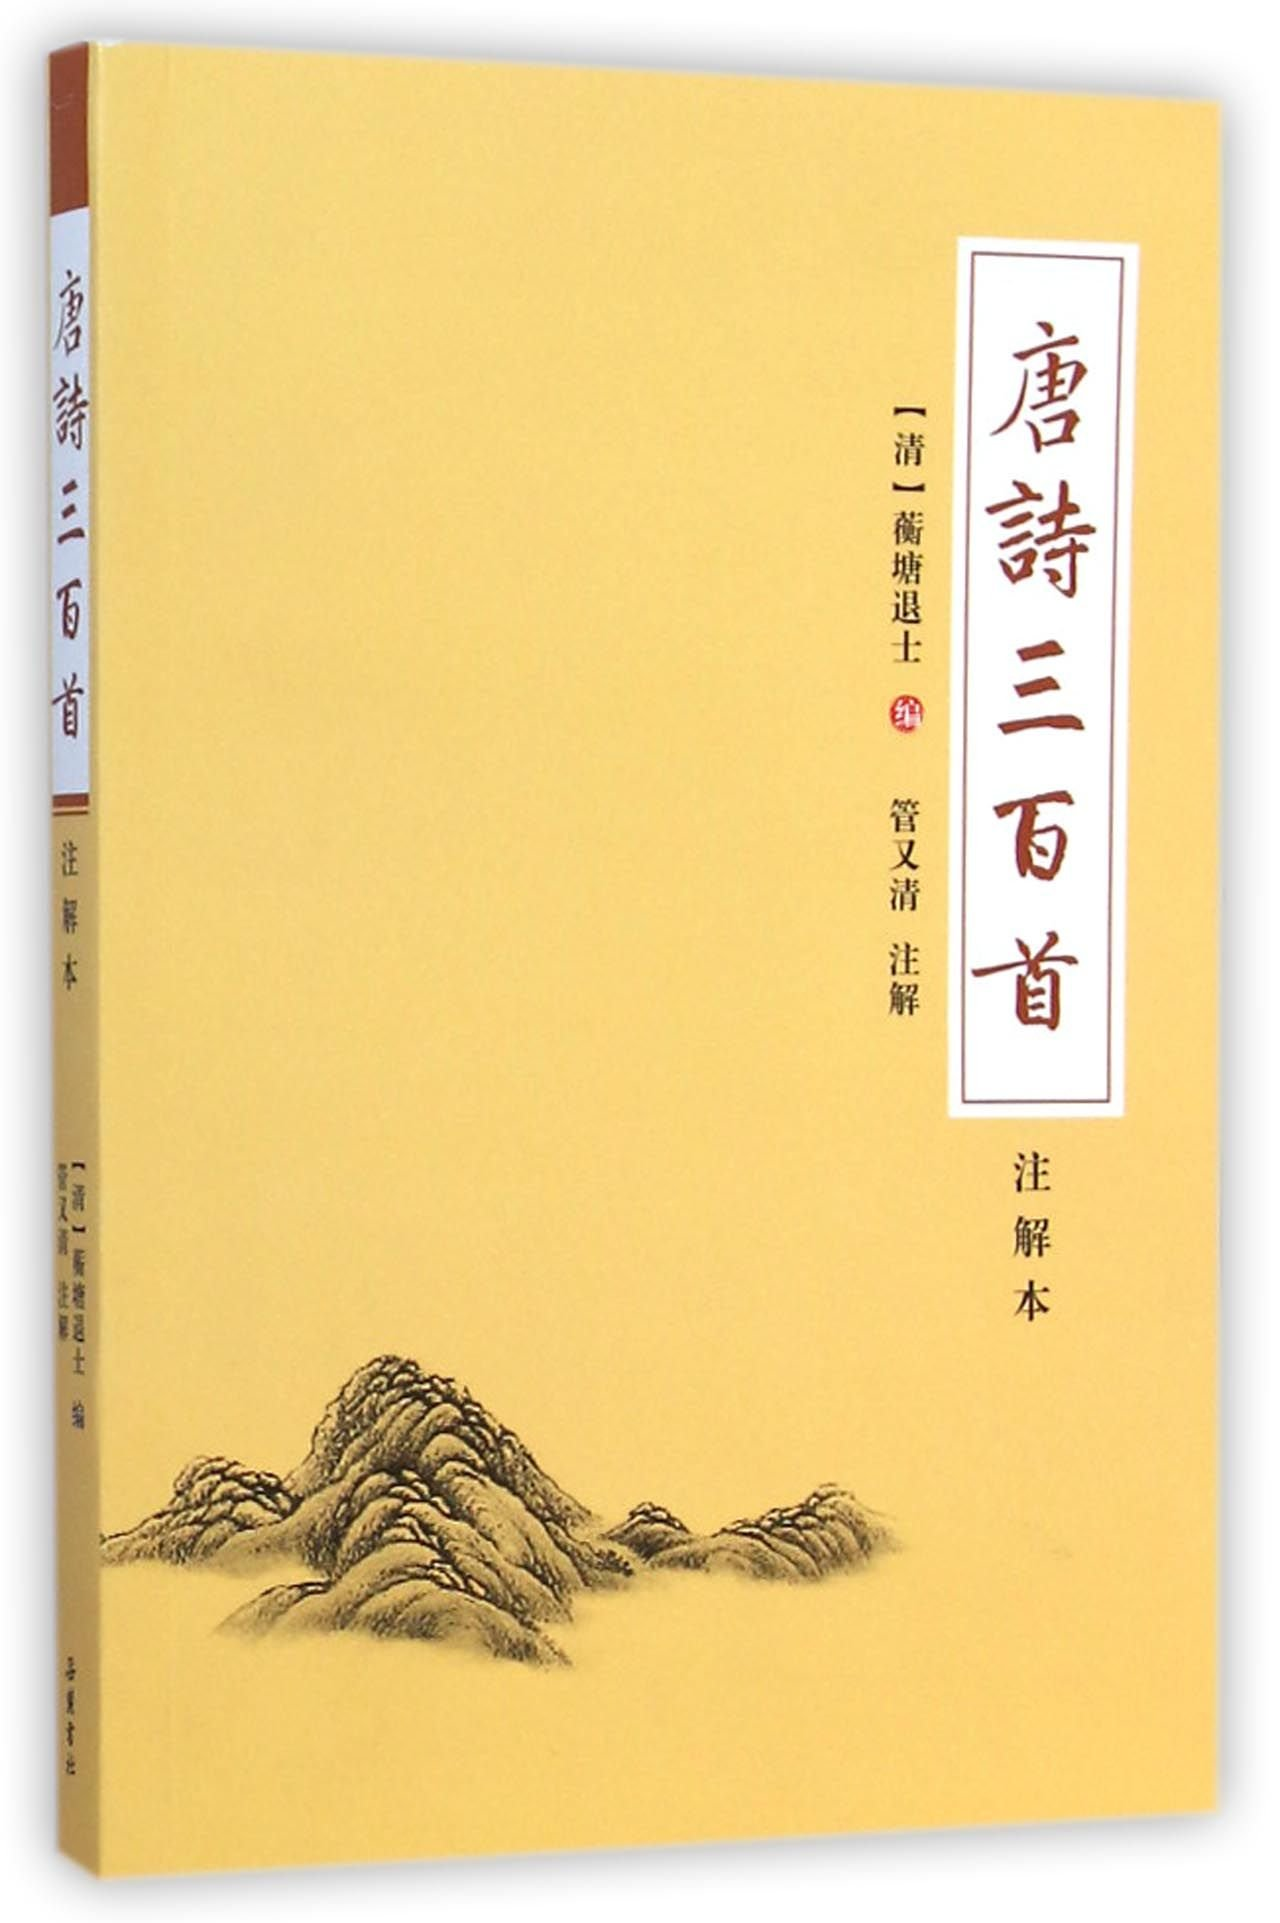 Three Hundred Tang Poems (Chinese Edition)